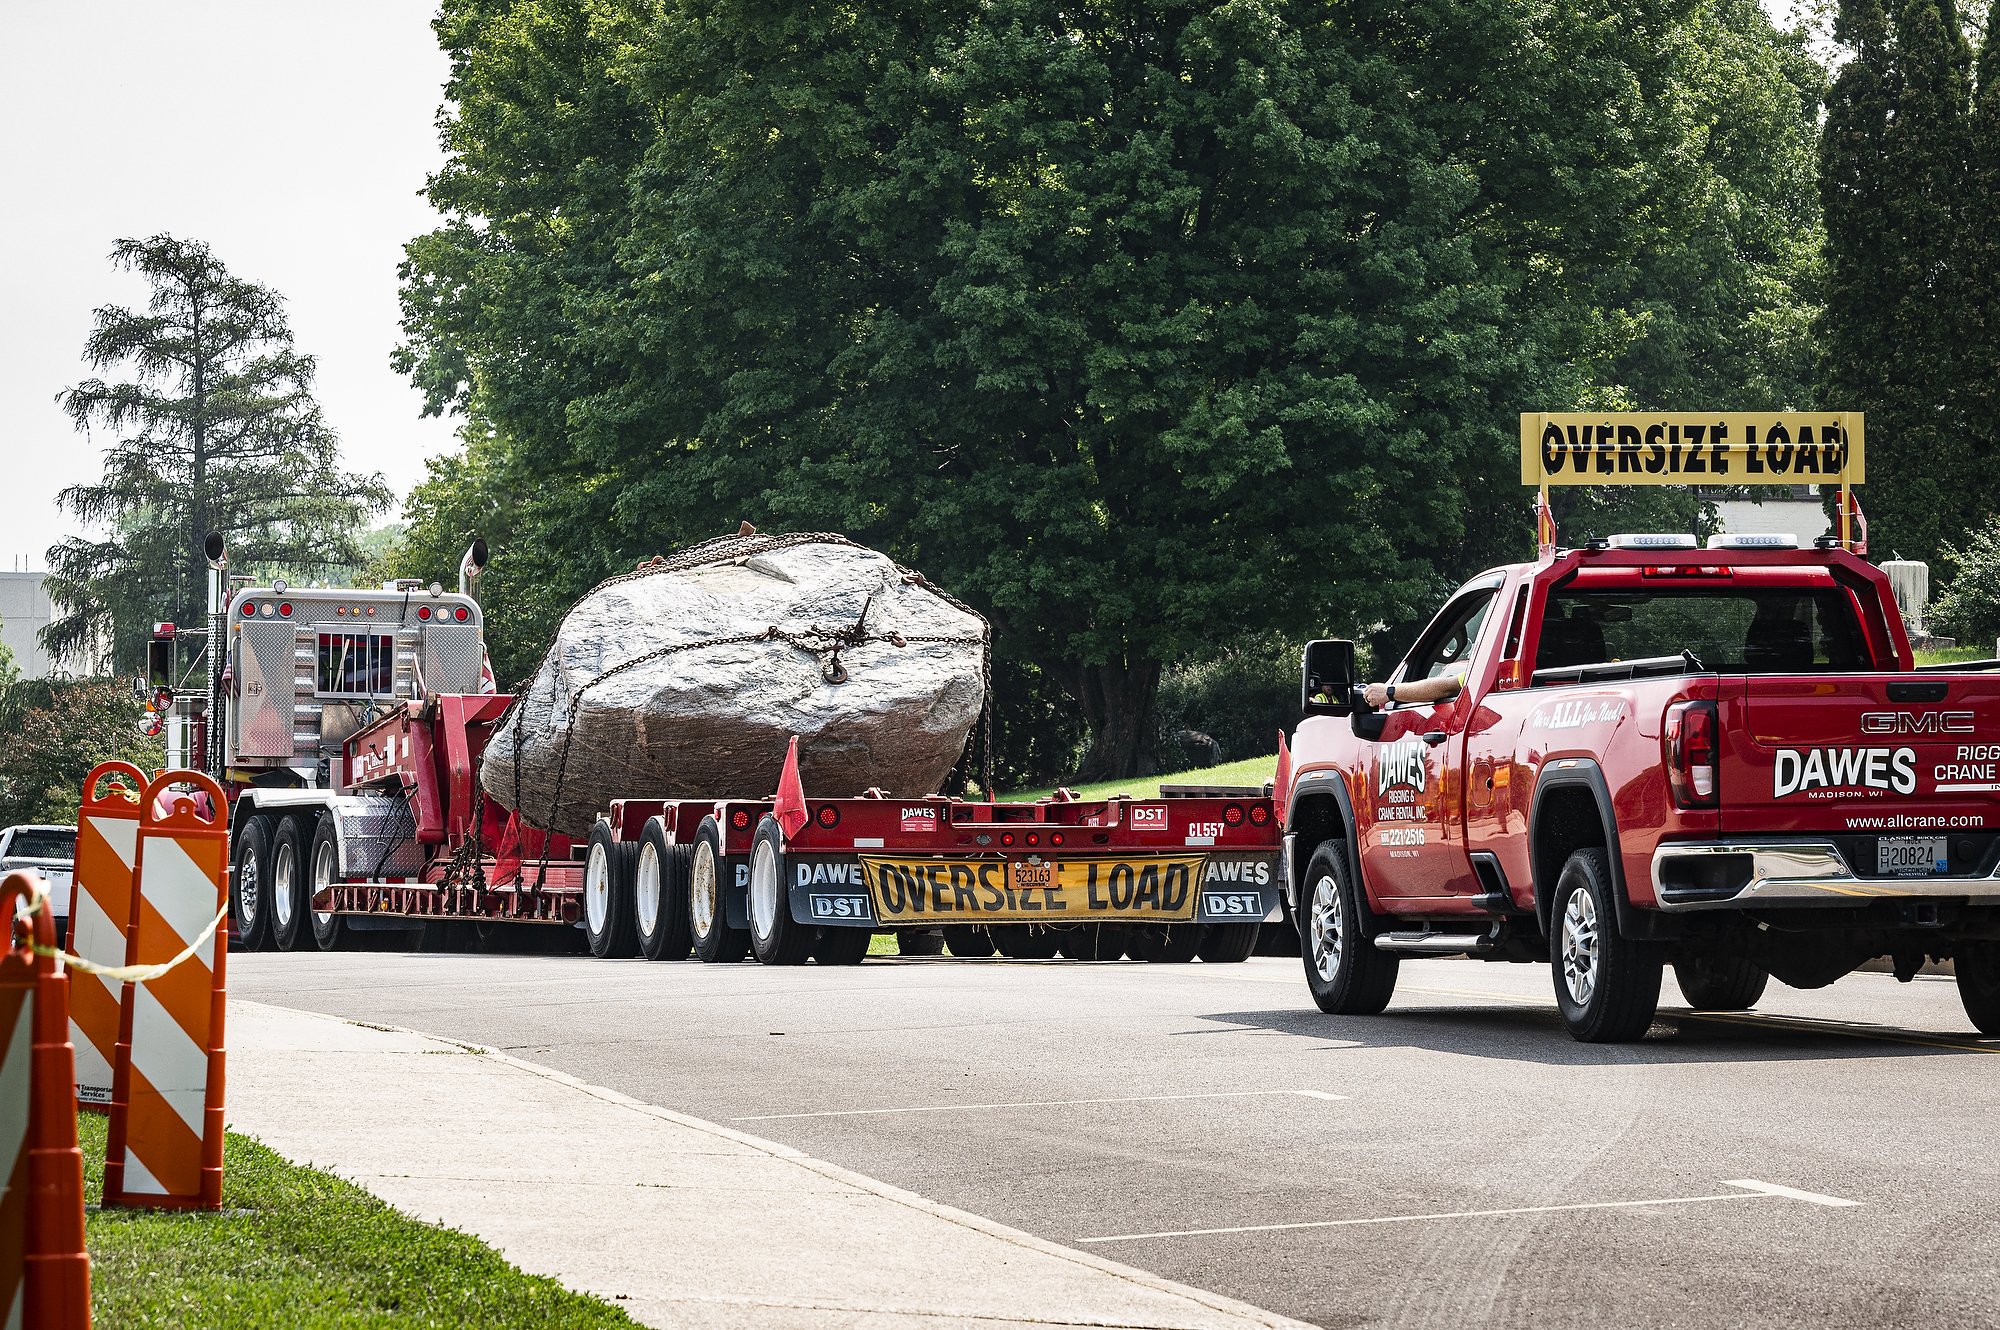 """A flatbed truck drives down the road with the rock in its bed, secured by chains. A pickup truck with the sign """"oversize load"""" follows."""